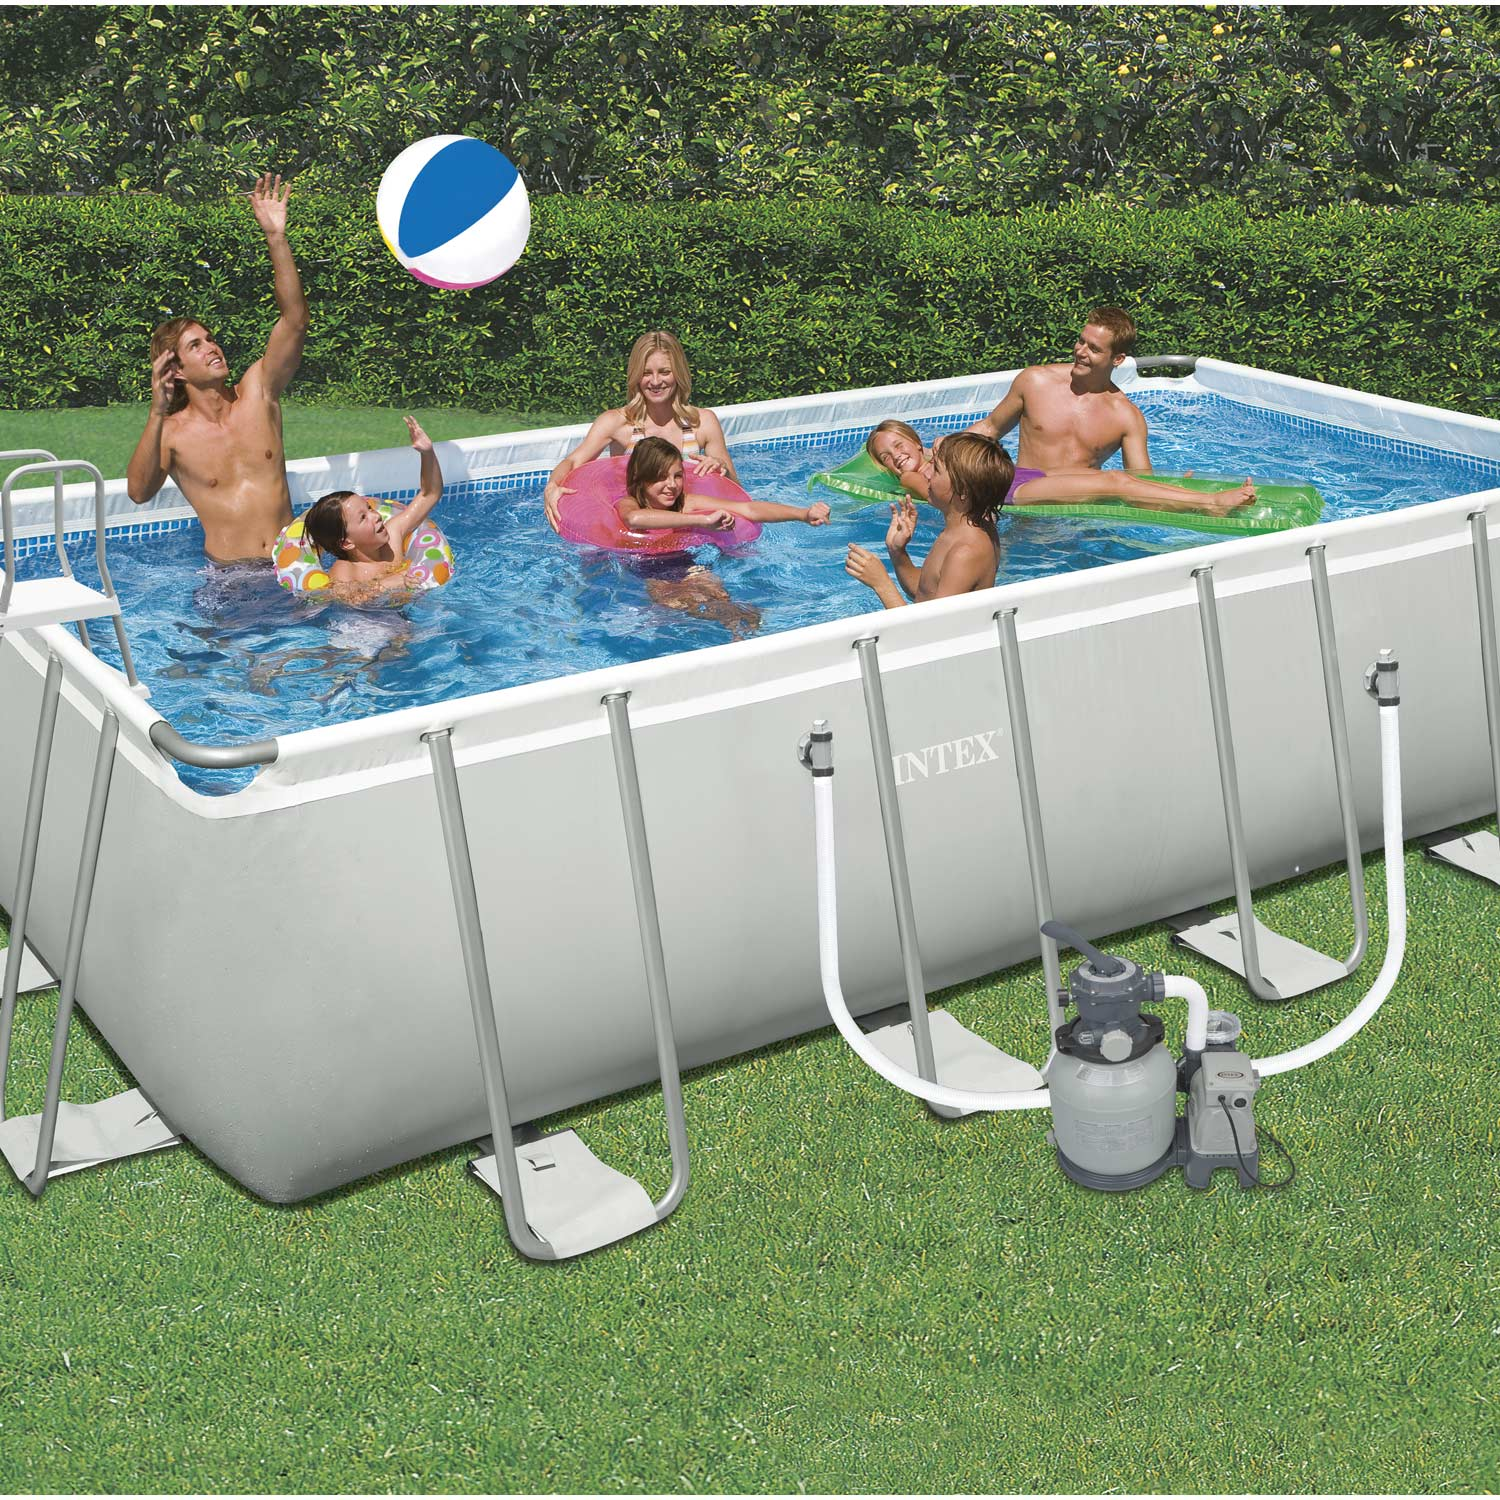 Piscine hors sol autoportante tubulaire intex l x l for Piscine tubulaire bois